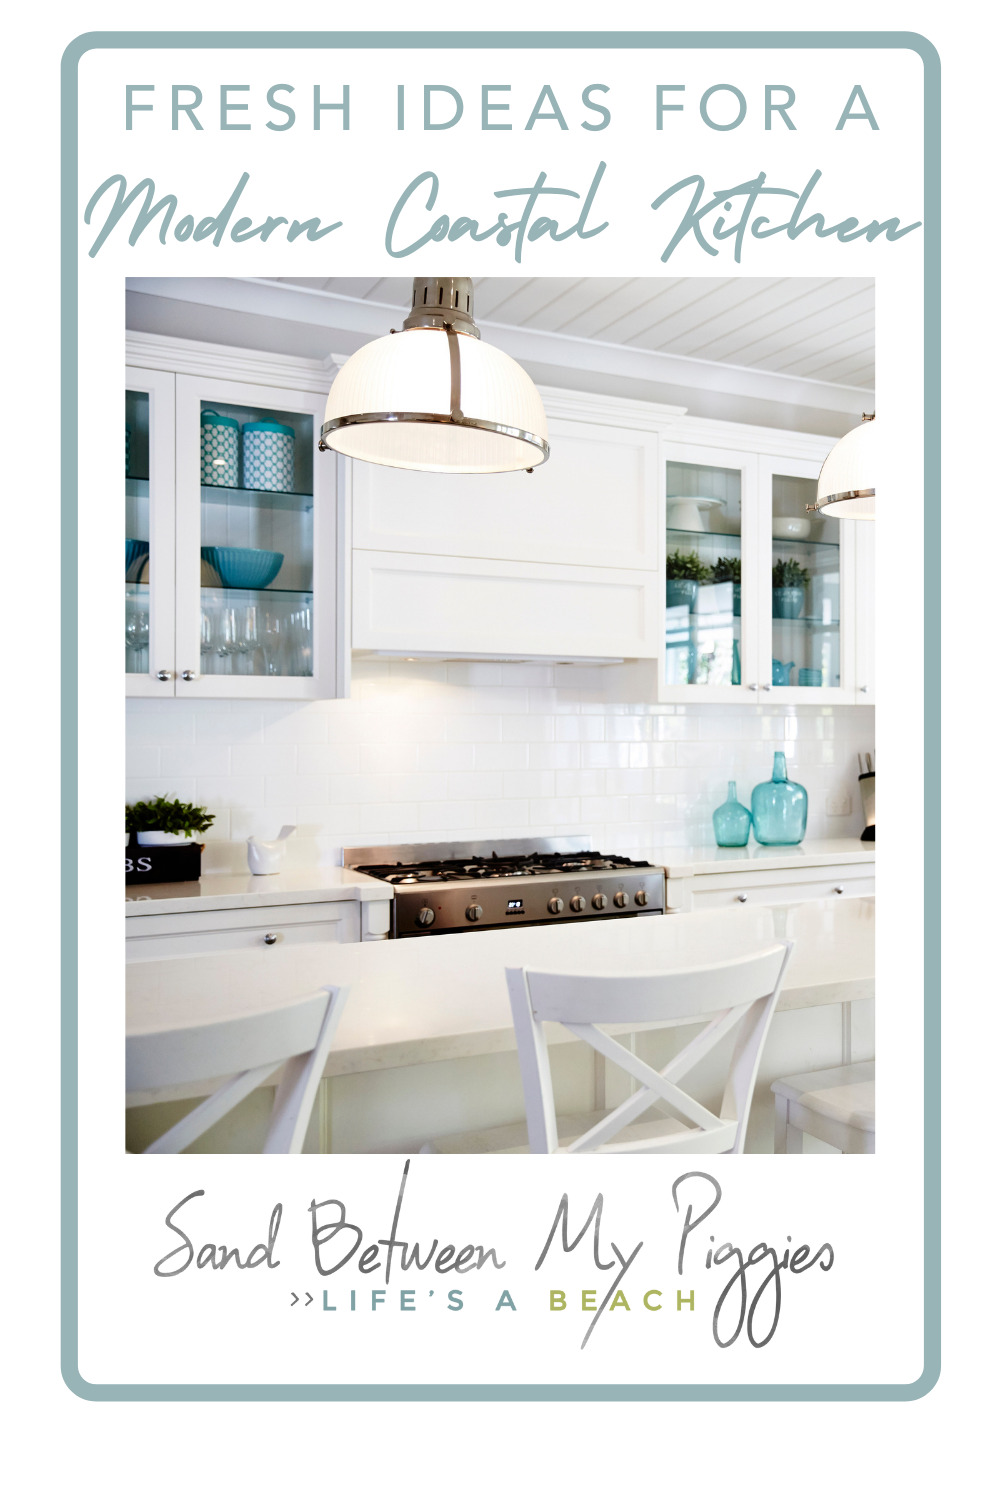 Sandbetweenmypiggies.com is all about the good life. Take a deep breath with travel and beach inspired ideas. Turn your home into an oasis. Try out these ideas for a modern coastal kitchen overhaul.